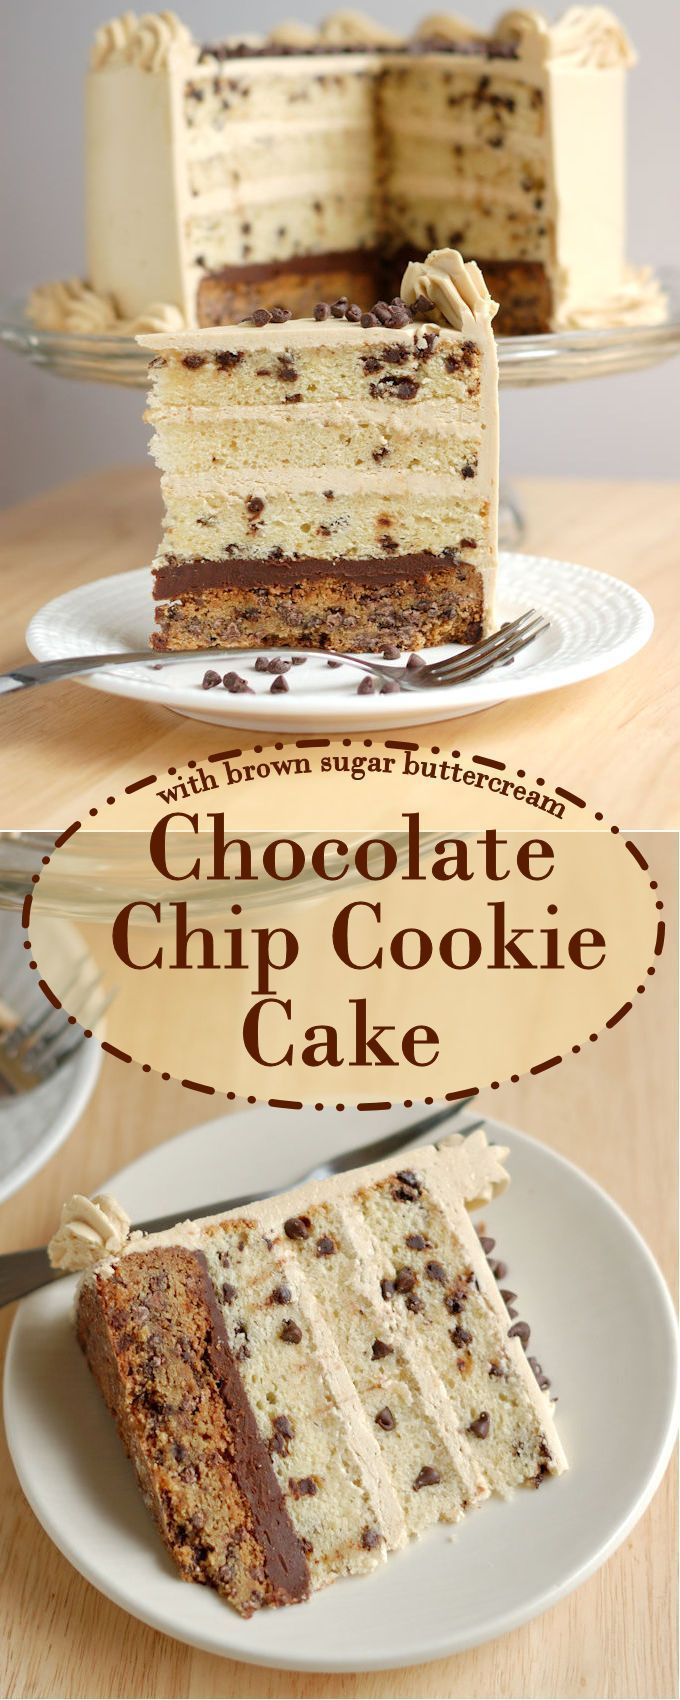 Best 25+ Chocolate chip cookie cake ideas on Pinterest | Birthday ...